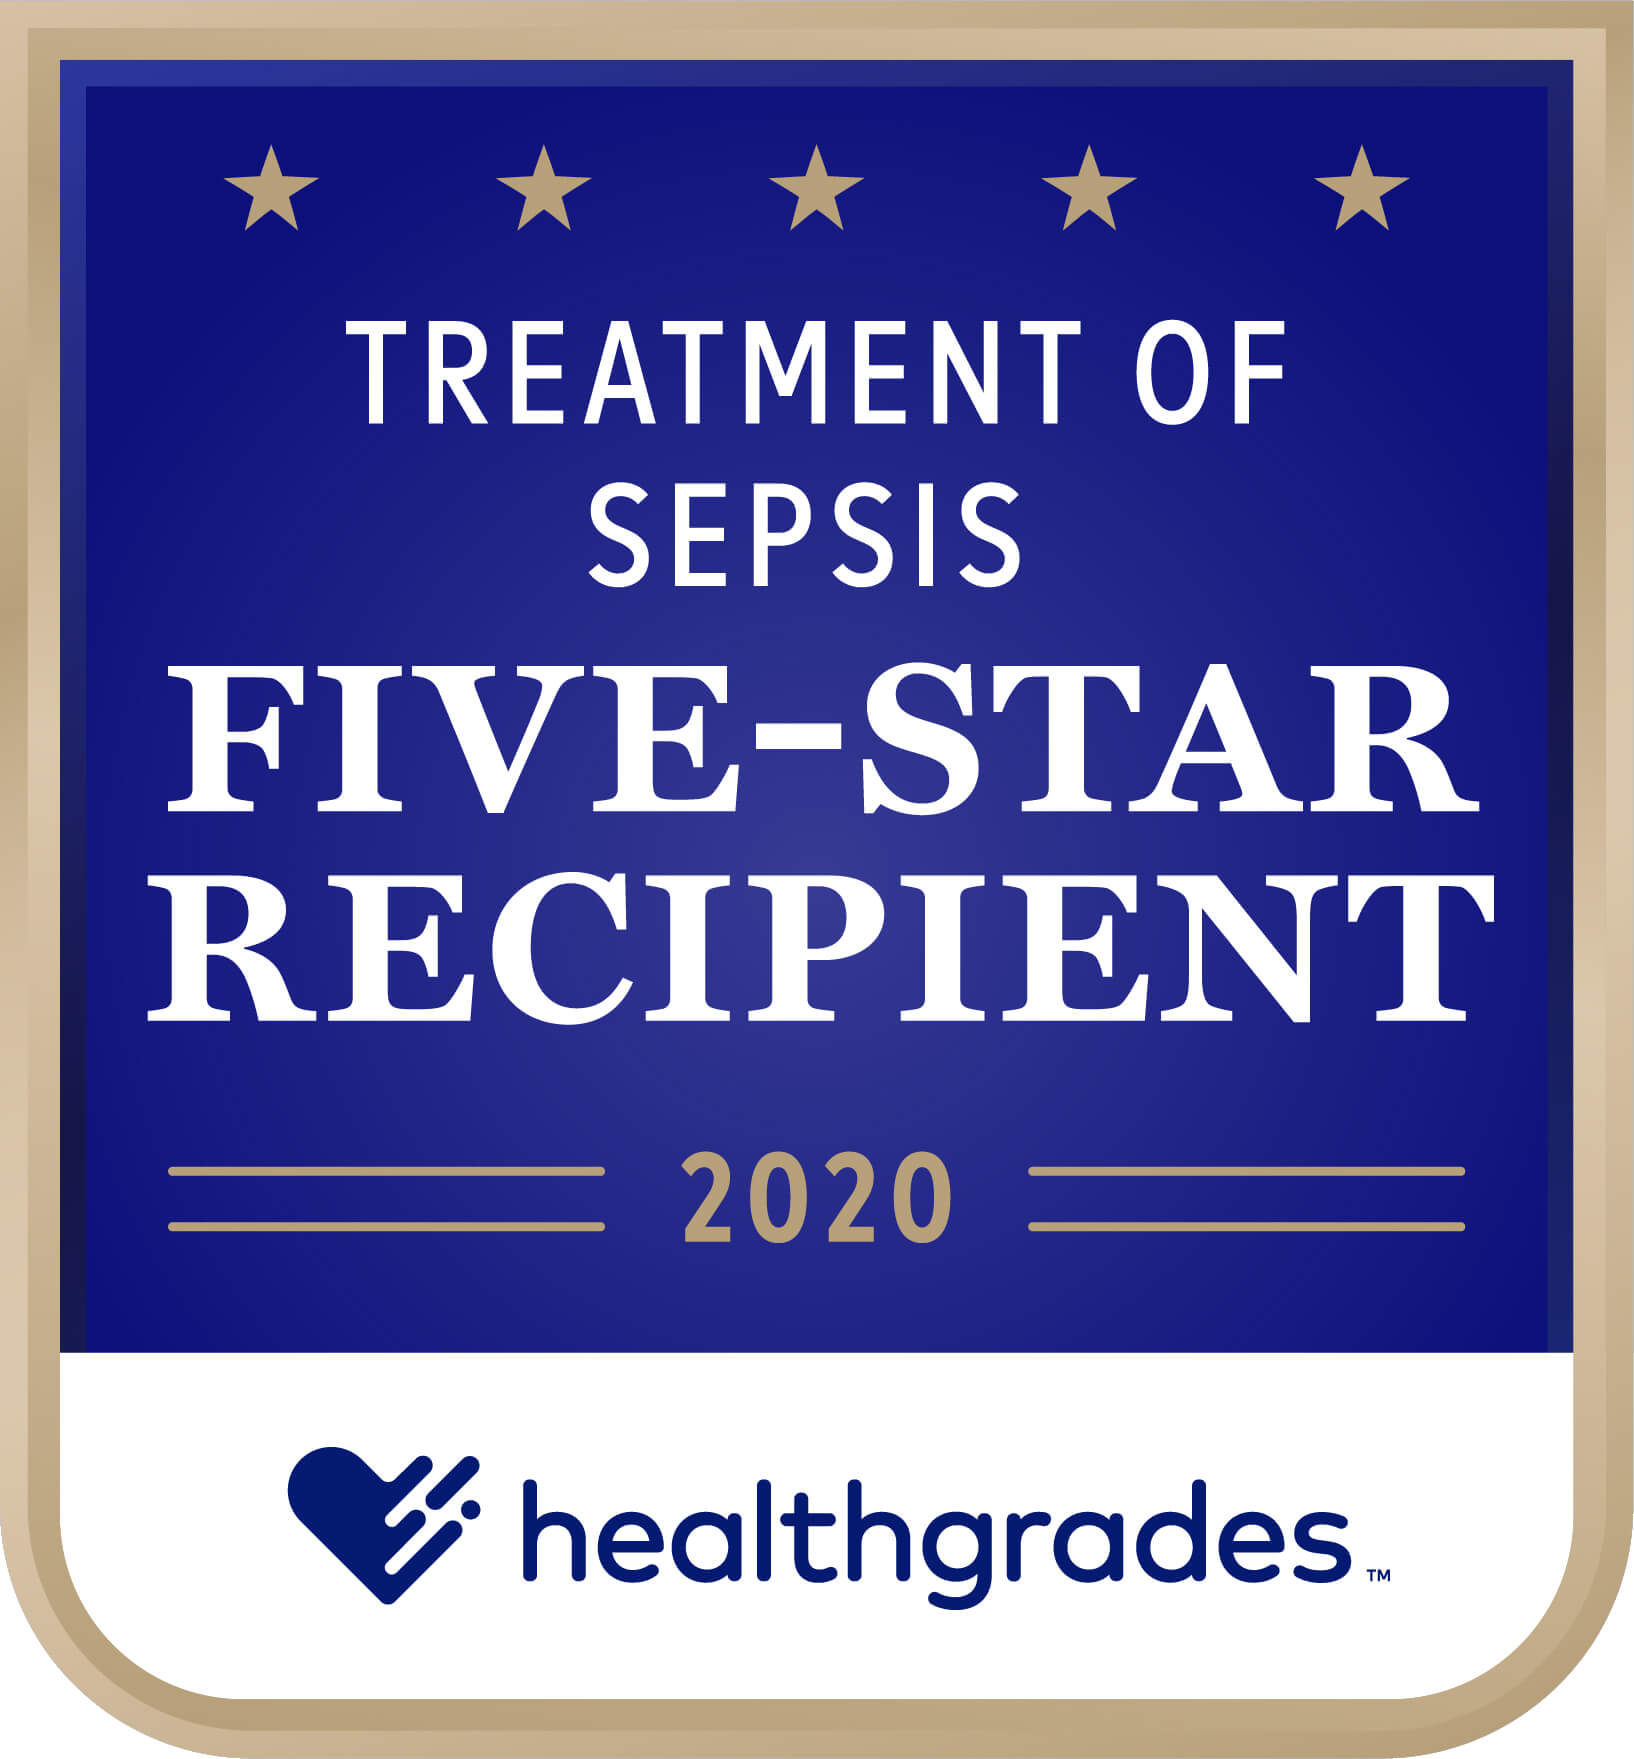 Healthgrades Five-Star Recipient for Treatment of Sepsis Award 2020